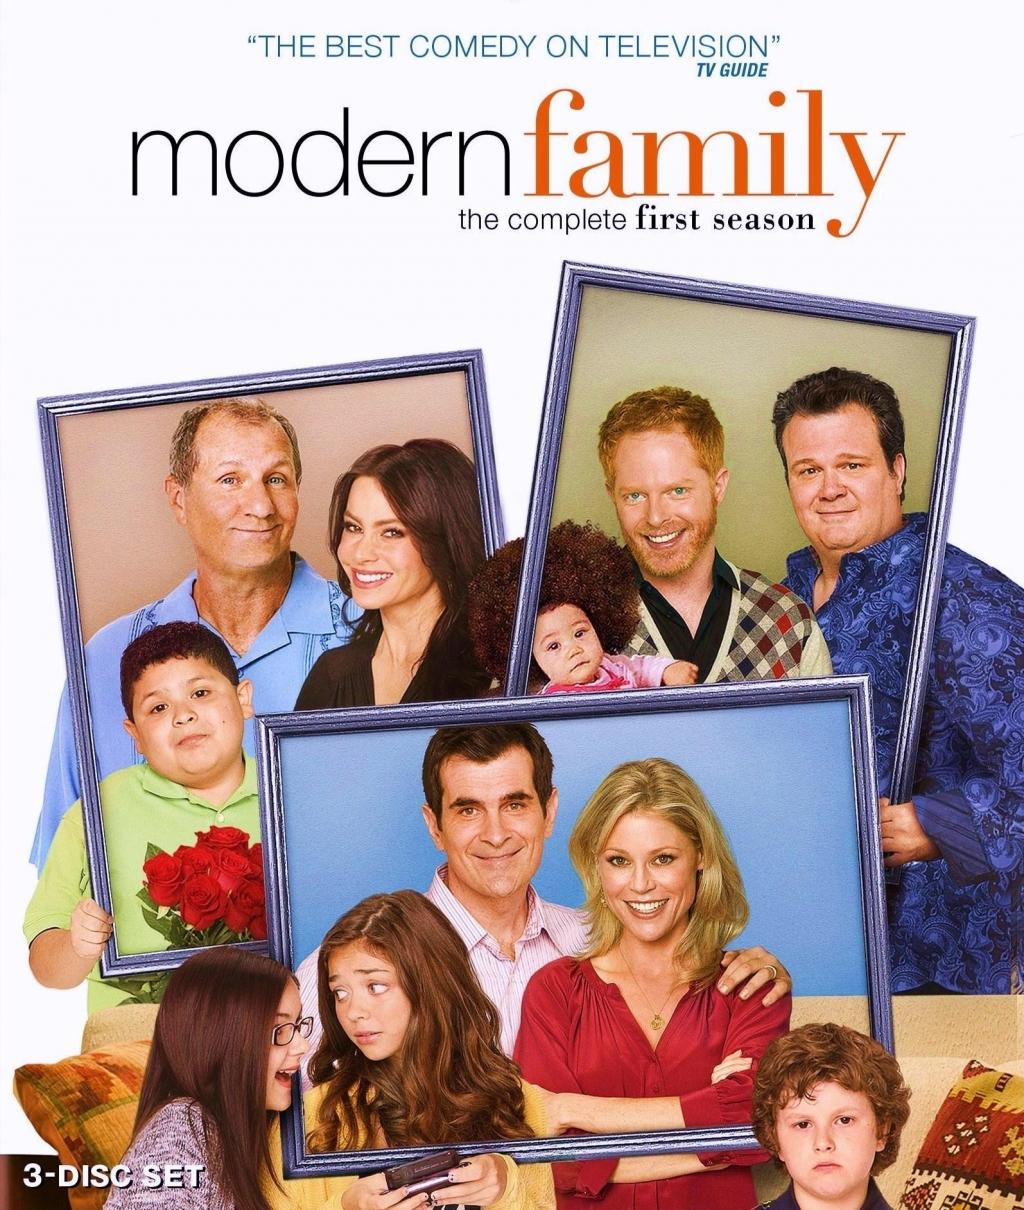 Full-cast-of-modern-family-cast-list-for-the-show-modern-family